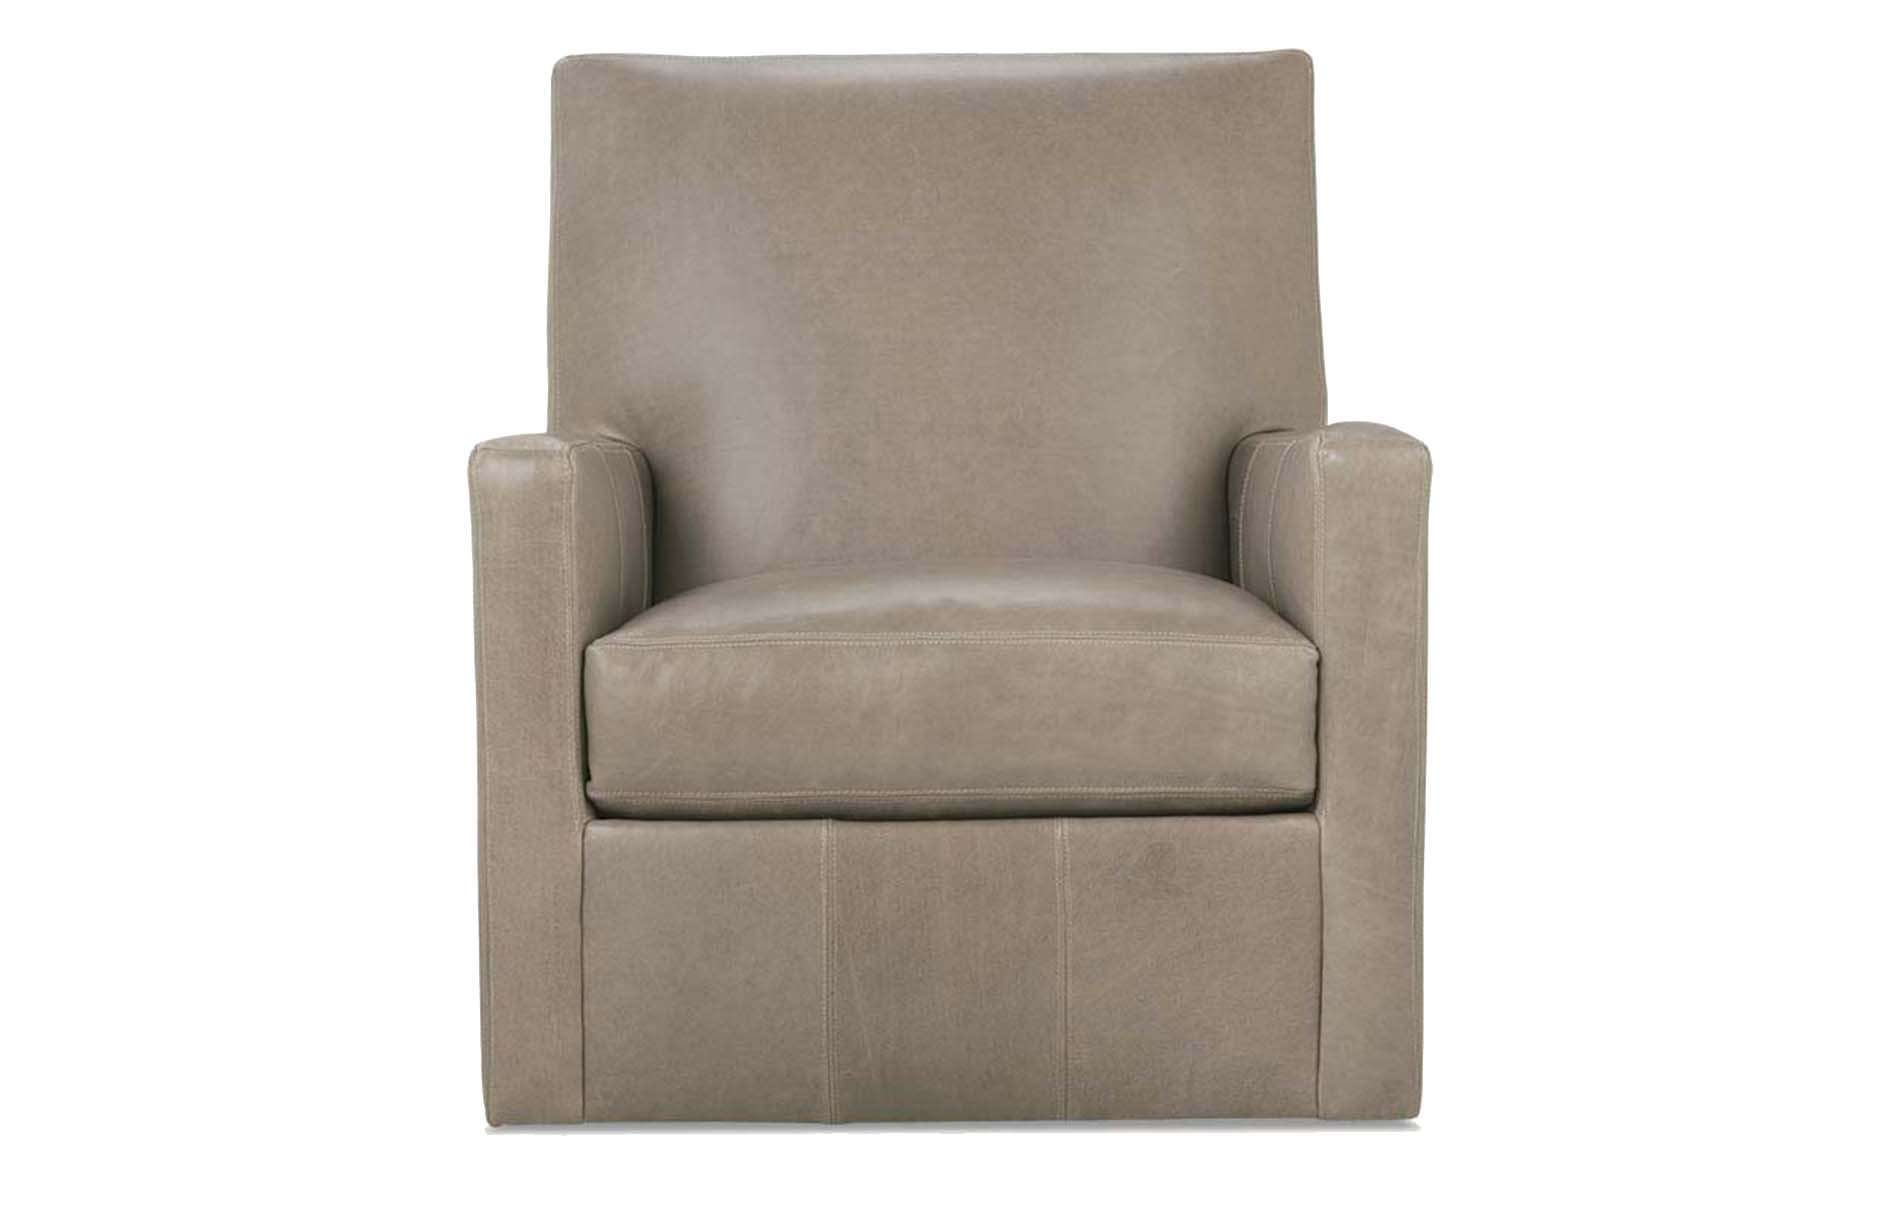 Carlyn Leather Swivel Glider Chair